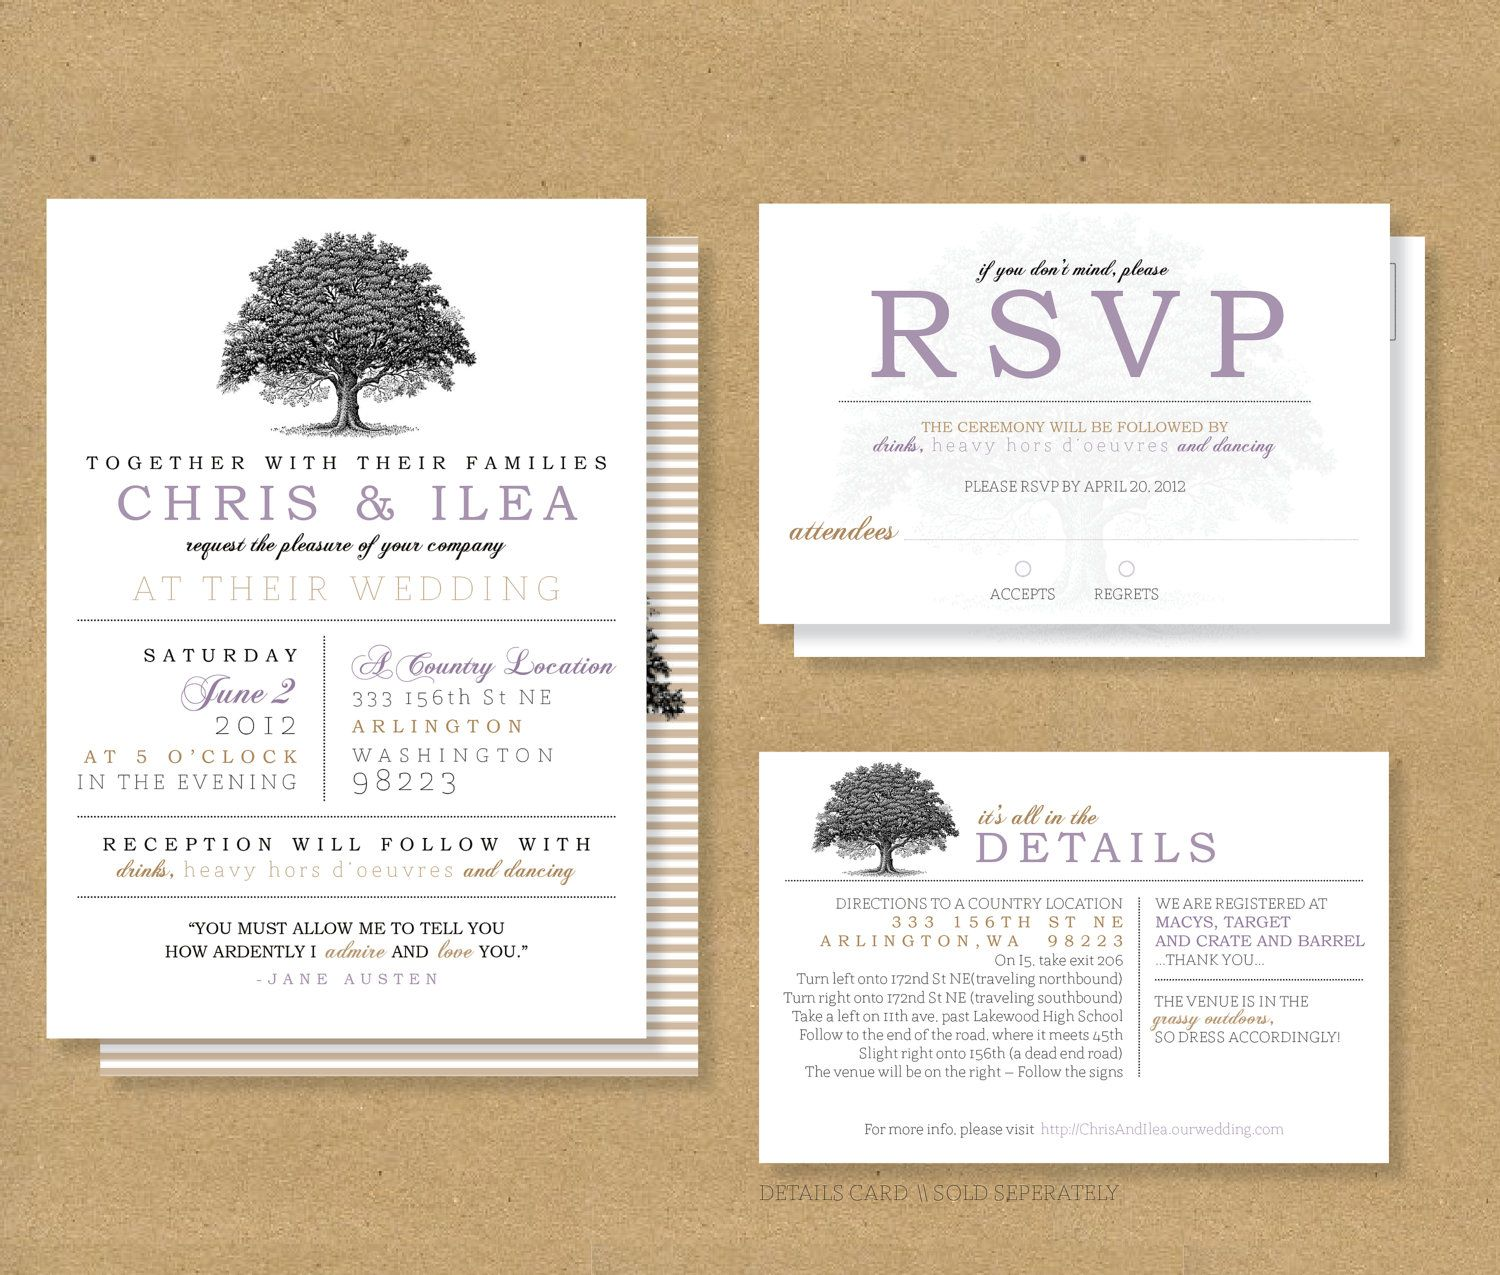 wedding invitationwedding rsvp wording samples tips wedding rsvp wording for yourwedding rsvp card wording